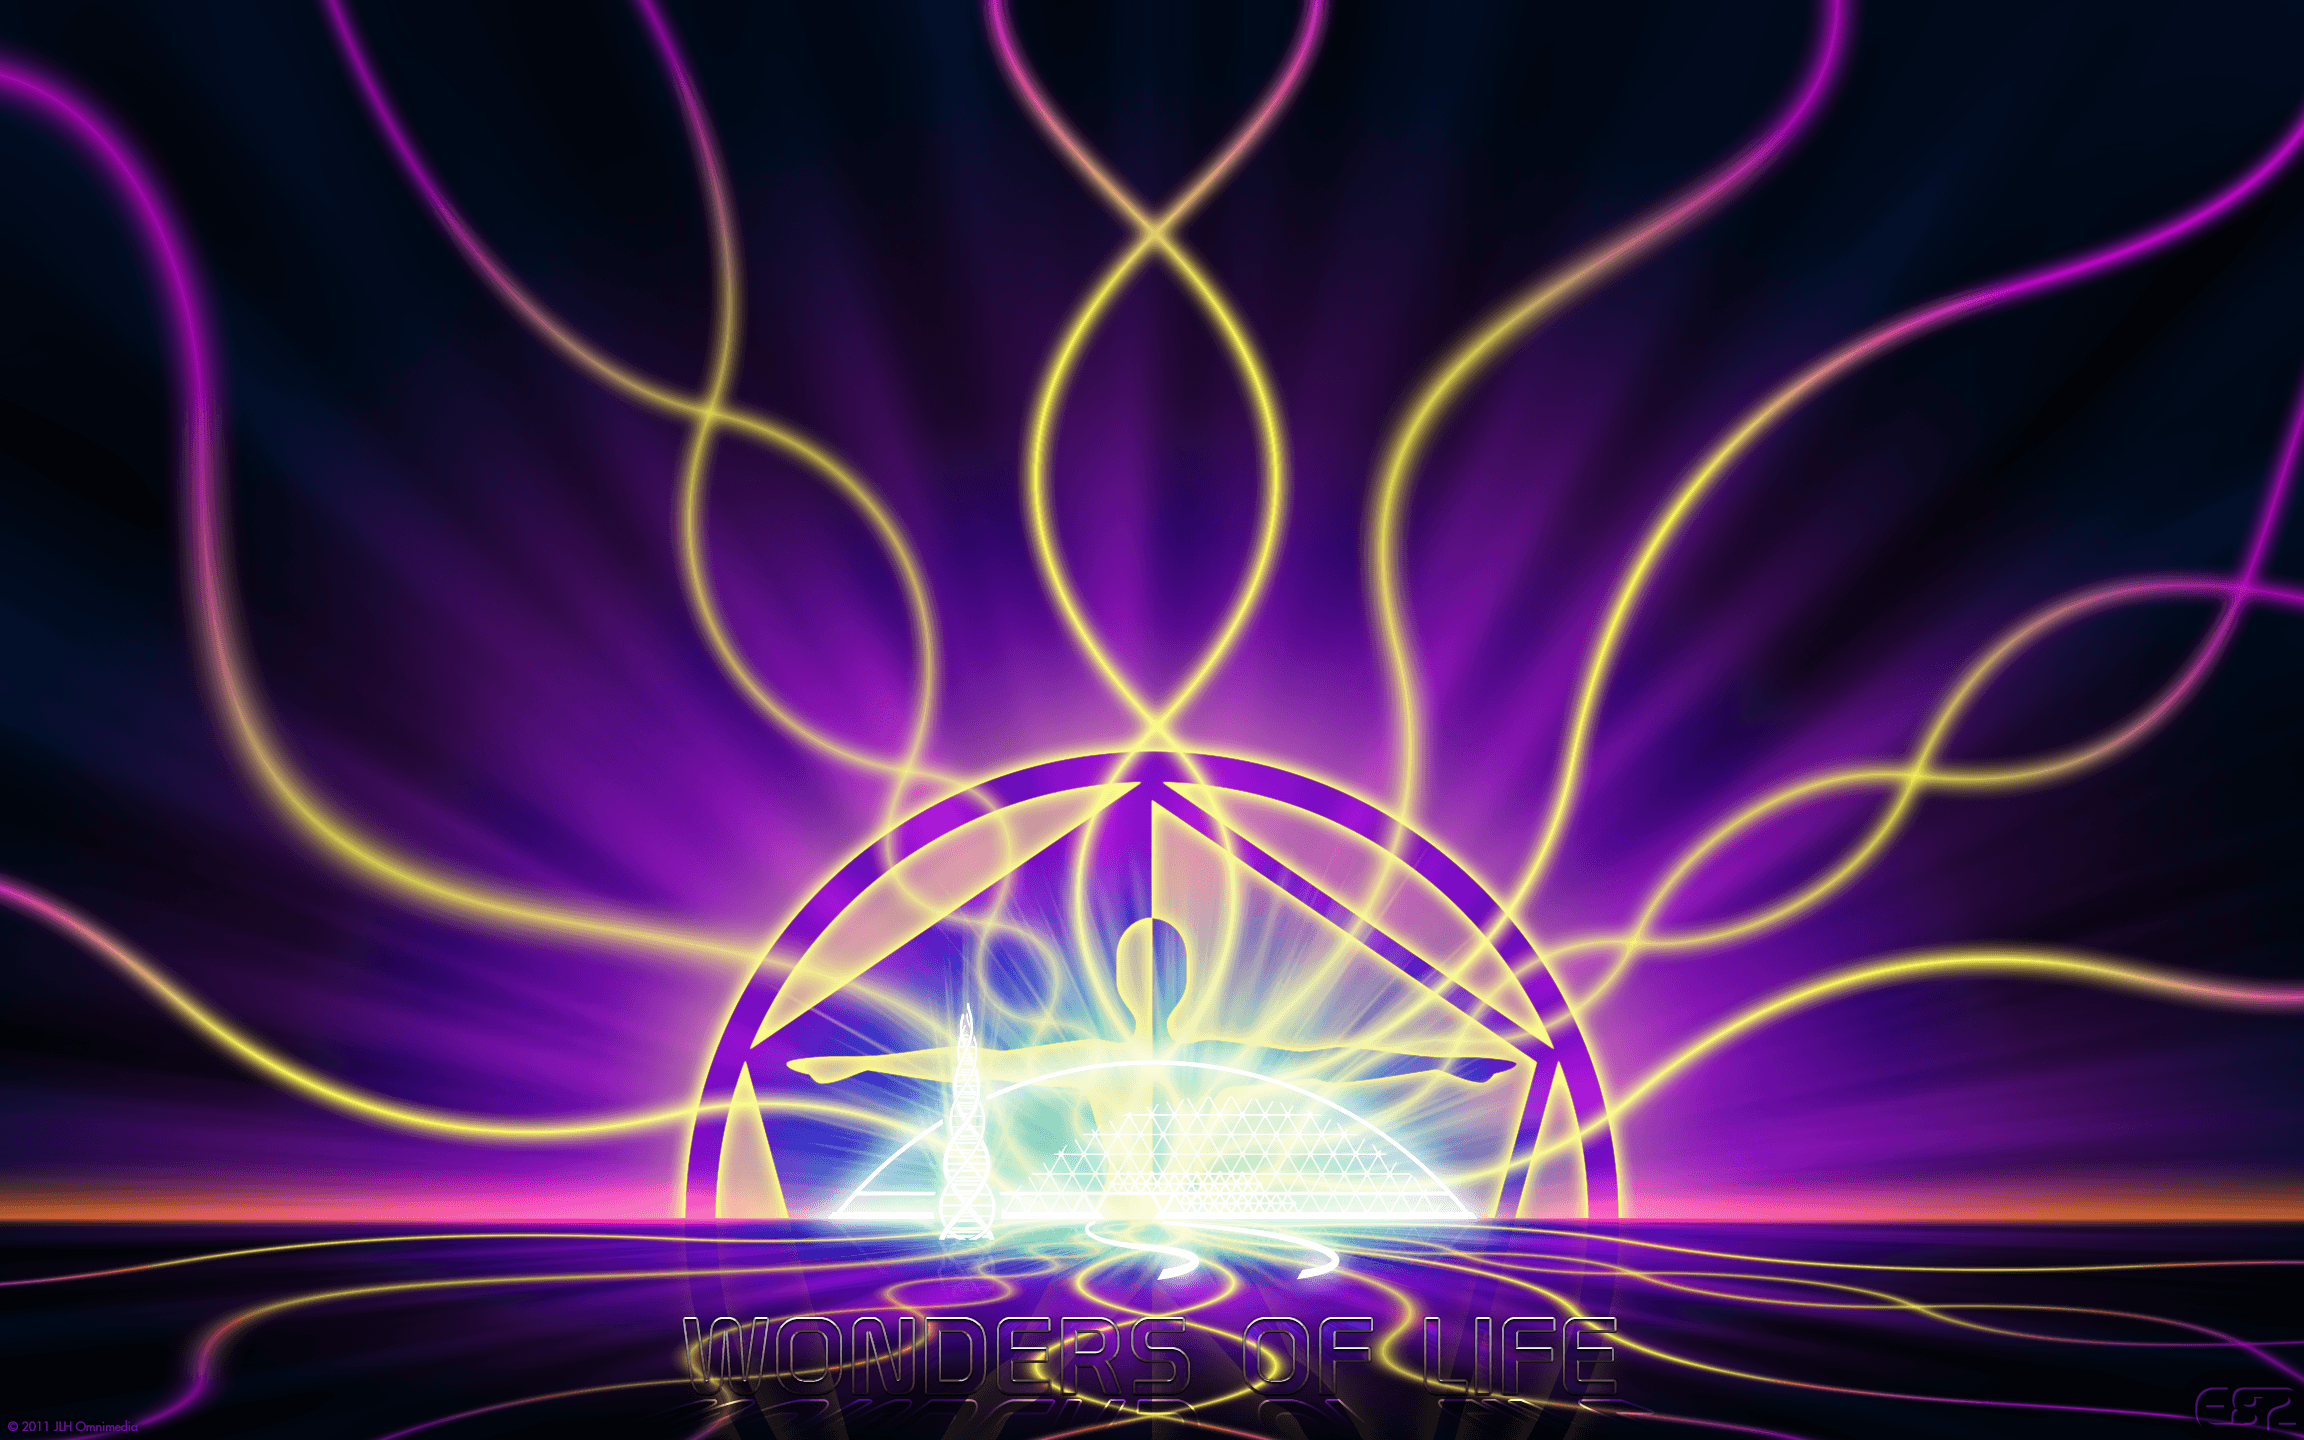 Purple And Gold Wallpapers - Wallpaper Cave